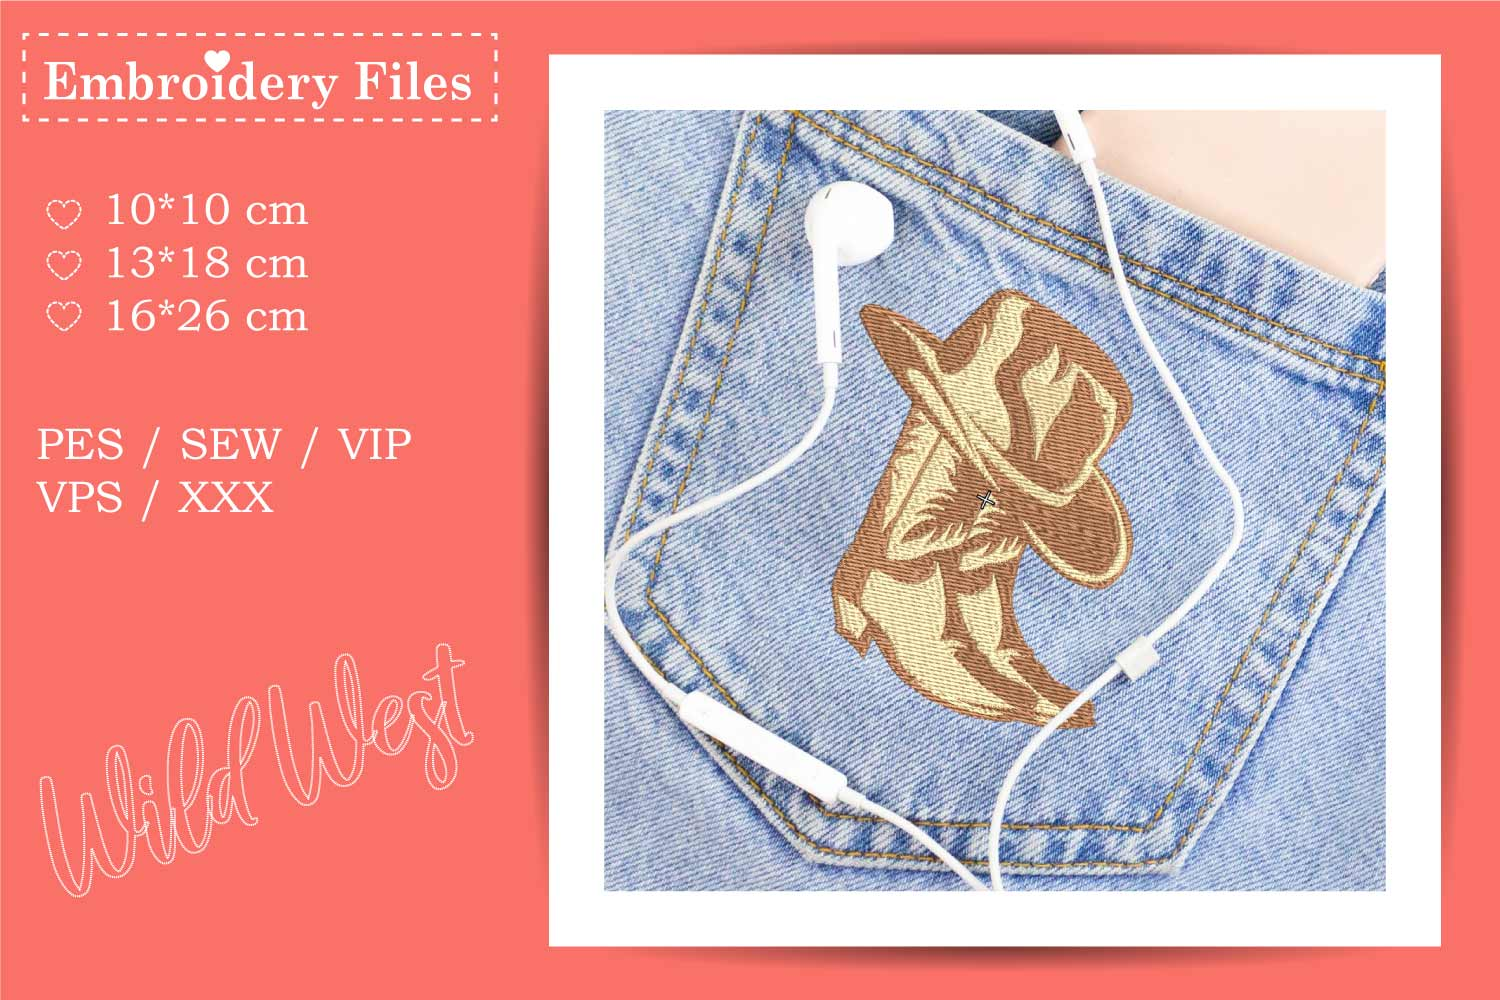 Cowboy Boots and Hat - Embroidery File for Beginners example image 3